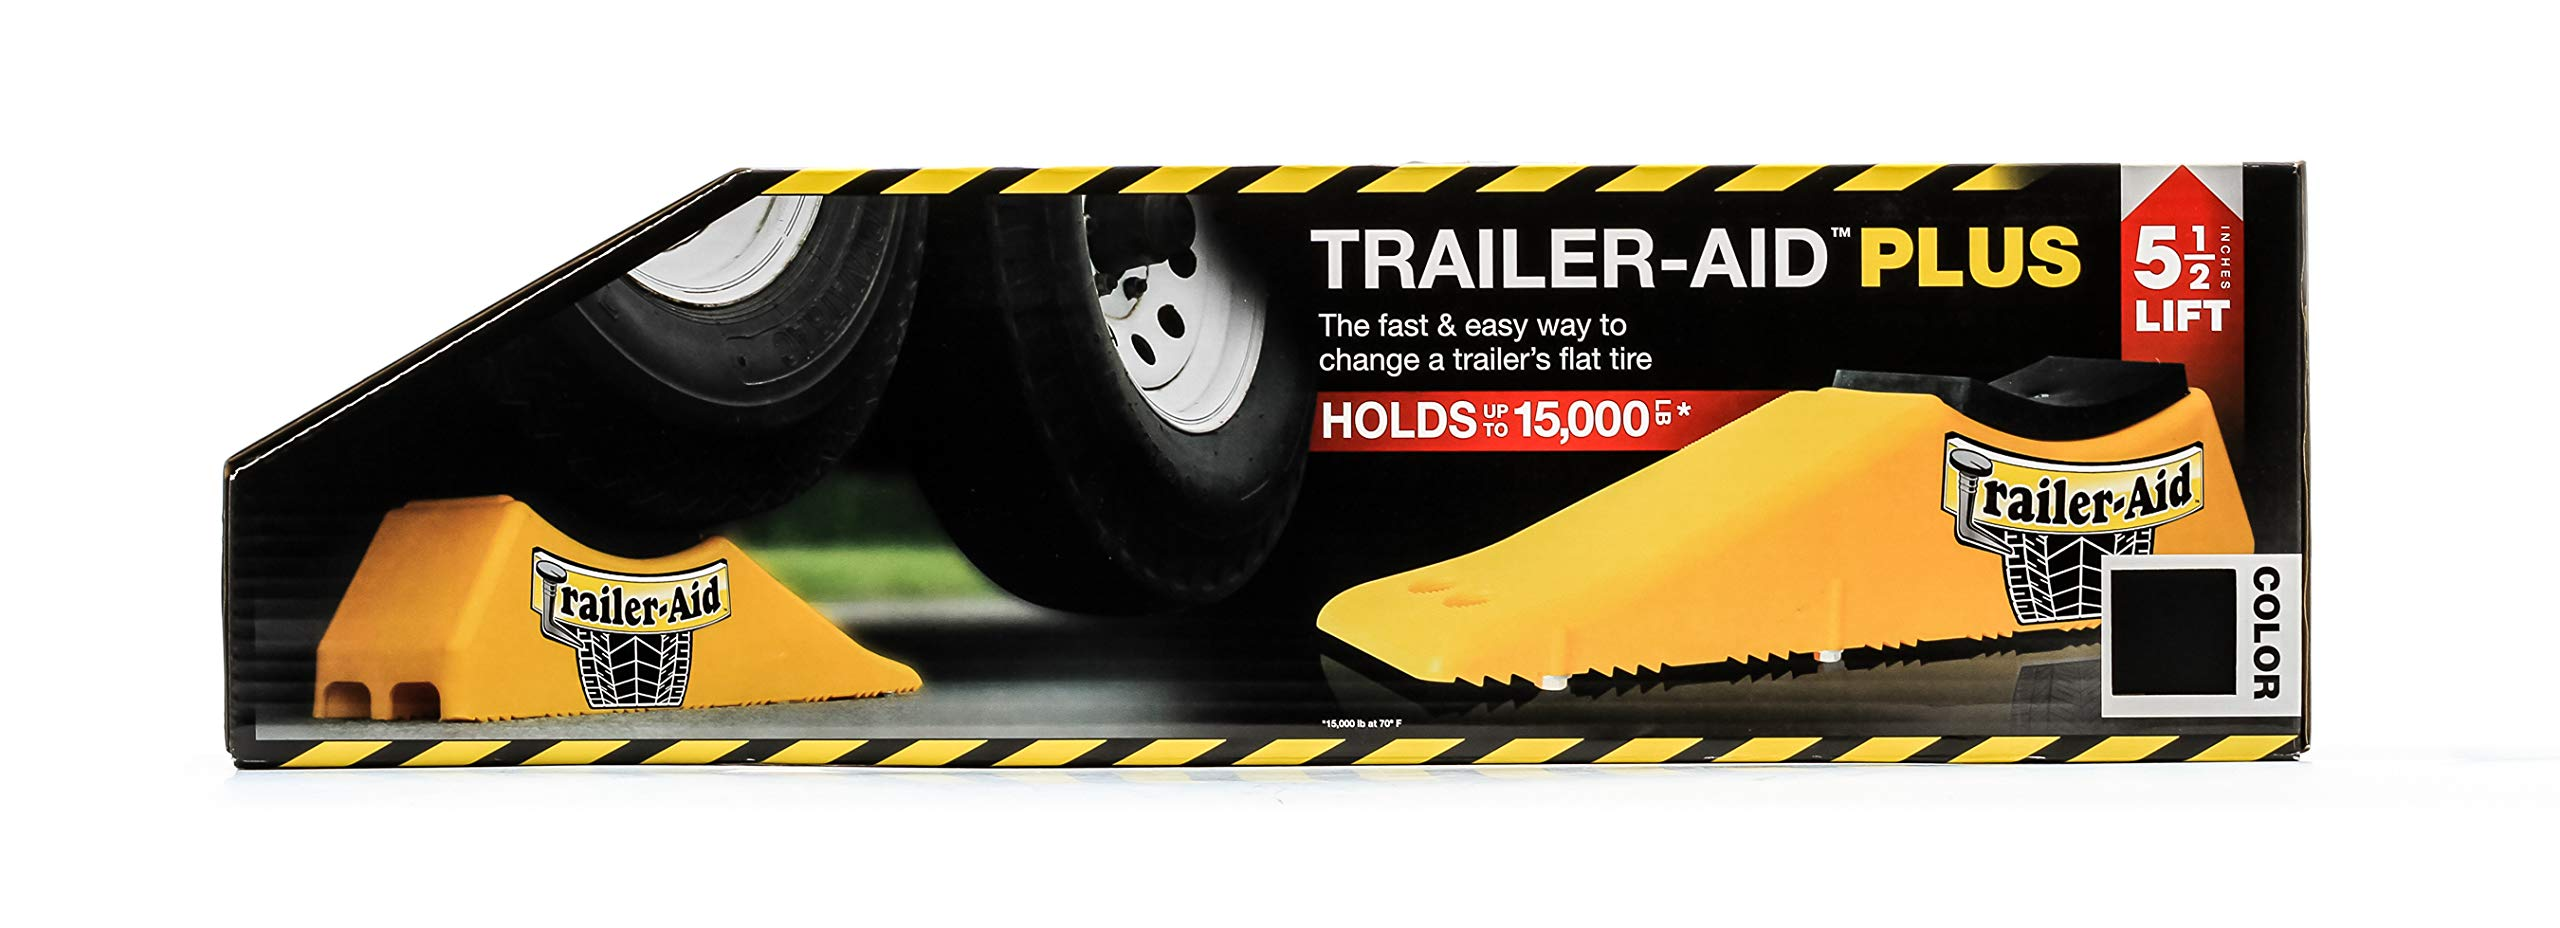 Trailer-Aid ''Plus'' Tandem Tire Changing Ramp, The Fast and Easy Way To Change A Trailer's Flat Tire, Holds up to 15,000 Pounds, 5.5 Inch Lift (Black) (24) by Trailer Aid